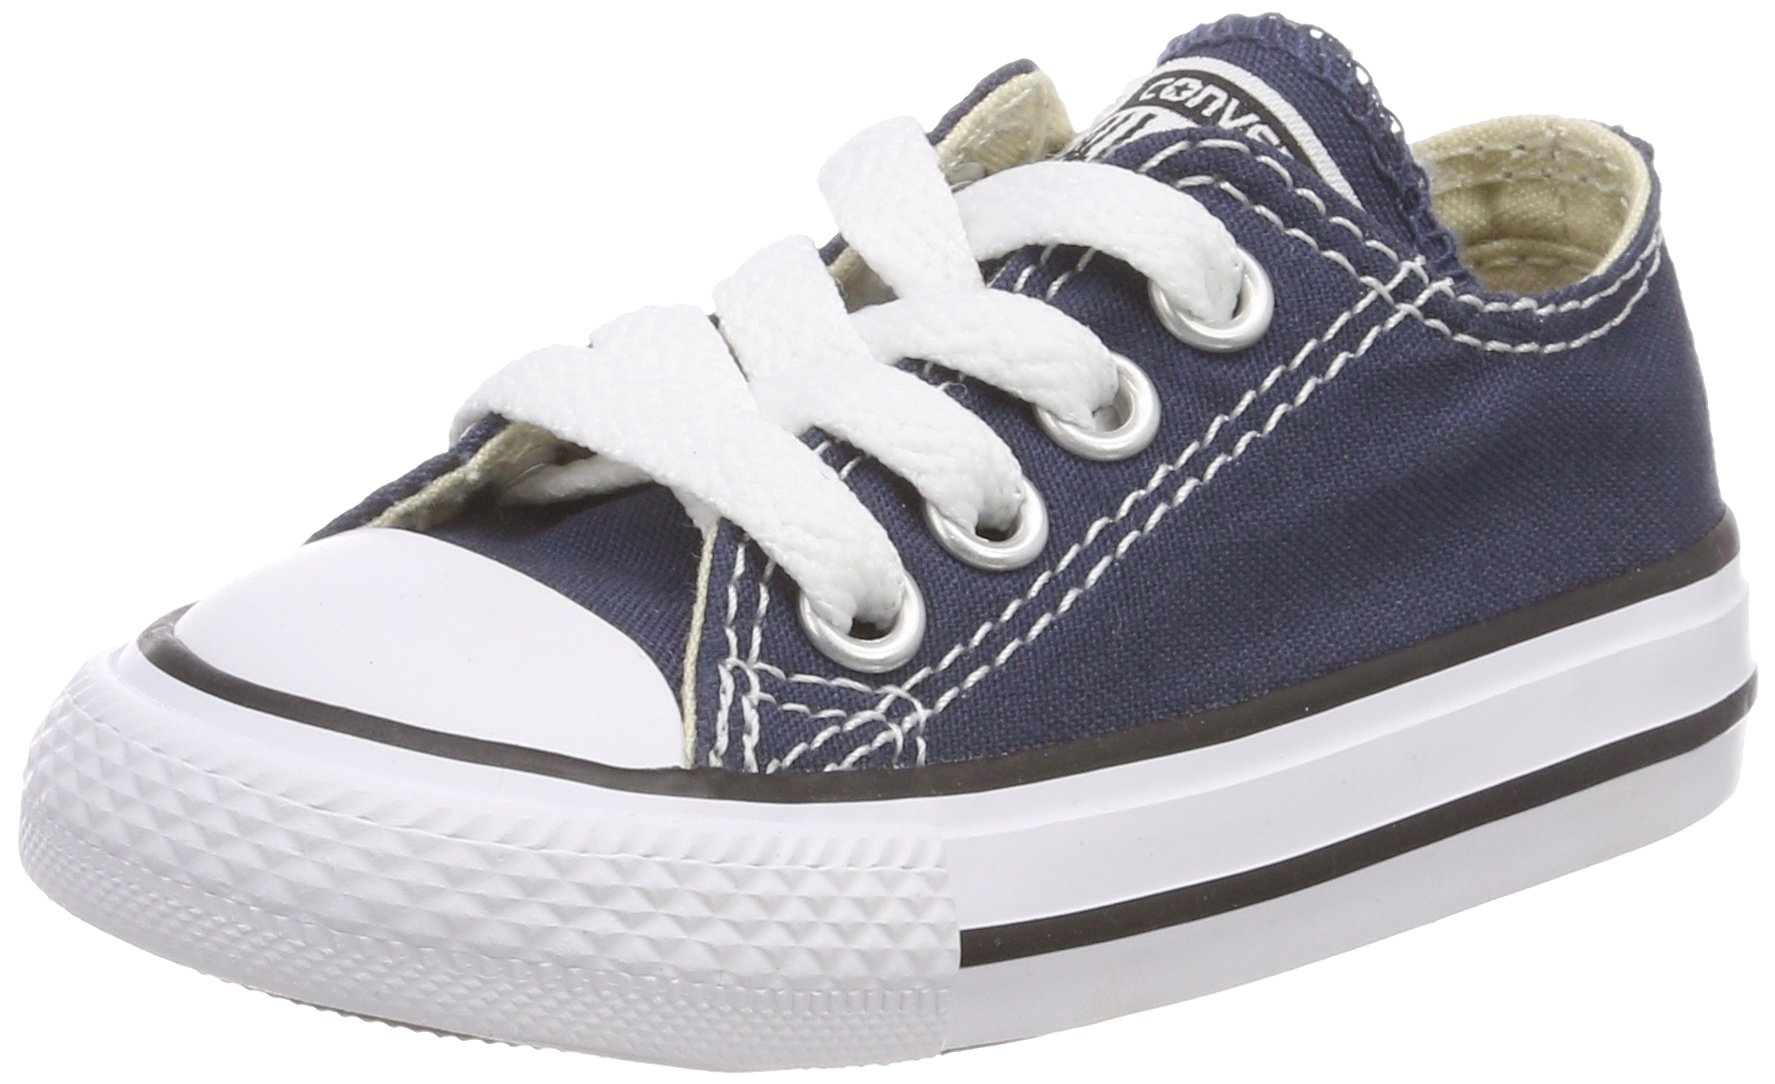 Converse Chuck Taylor All Star Canvas Low Top Sneaker, Navy, 10.5 M US Little Kid